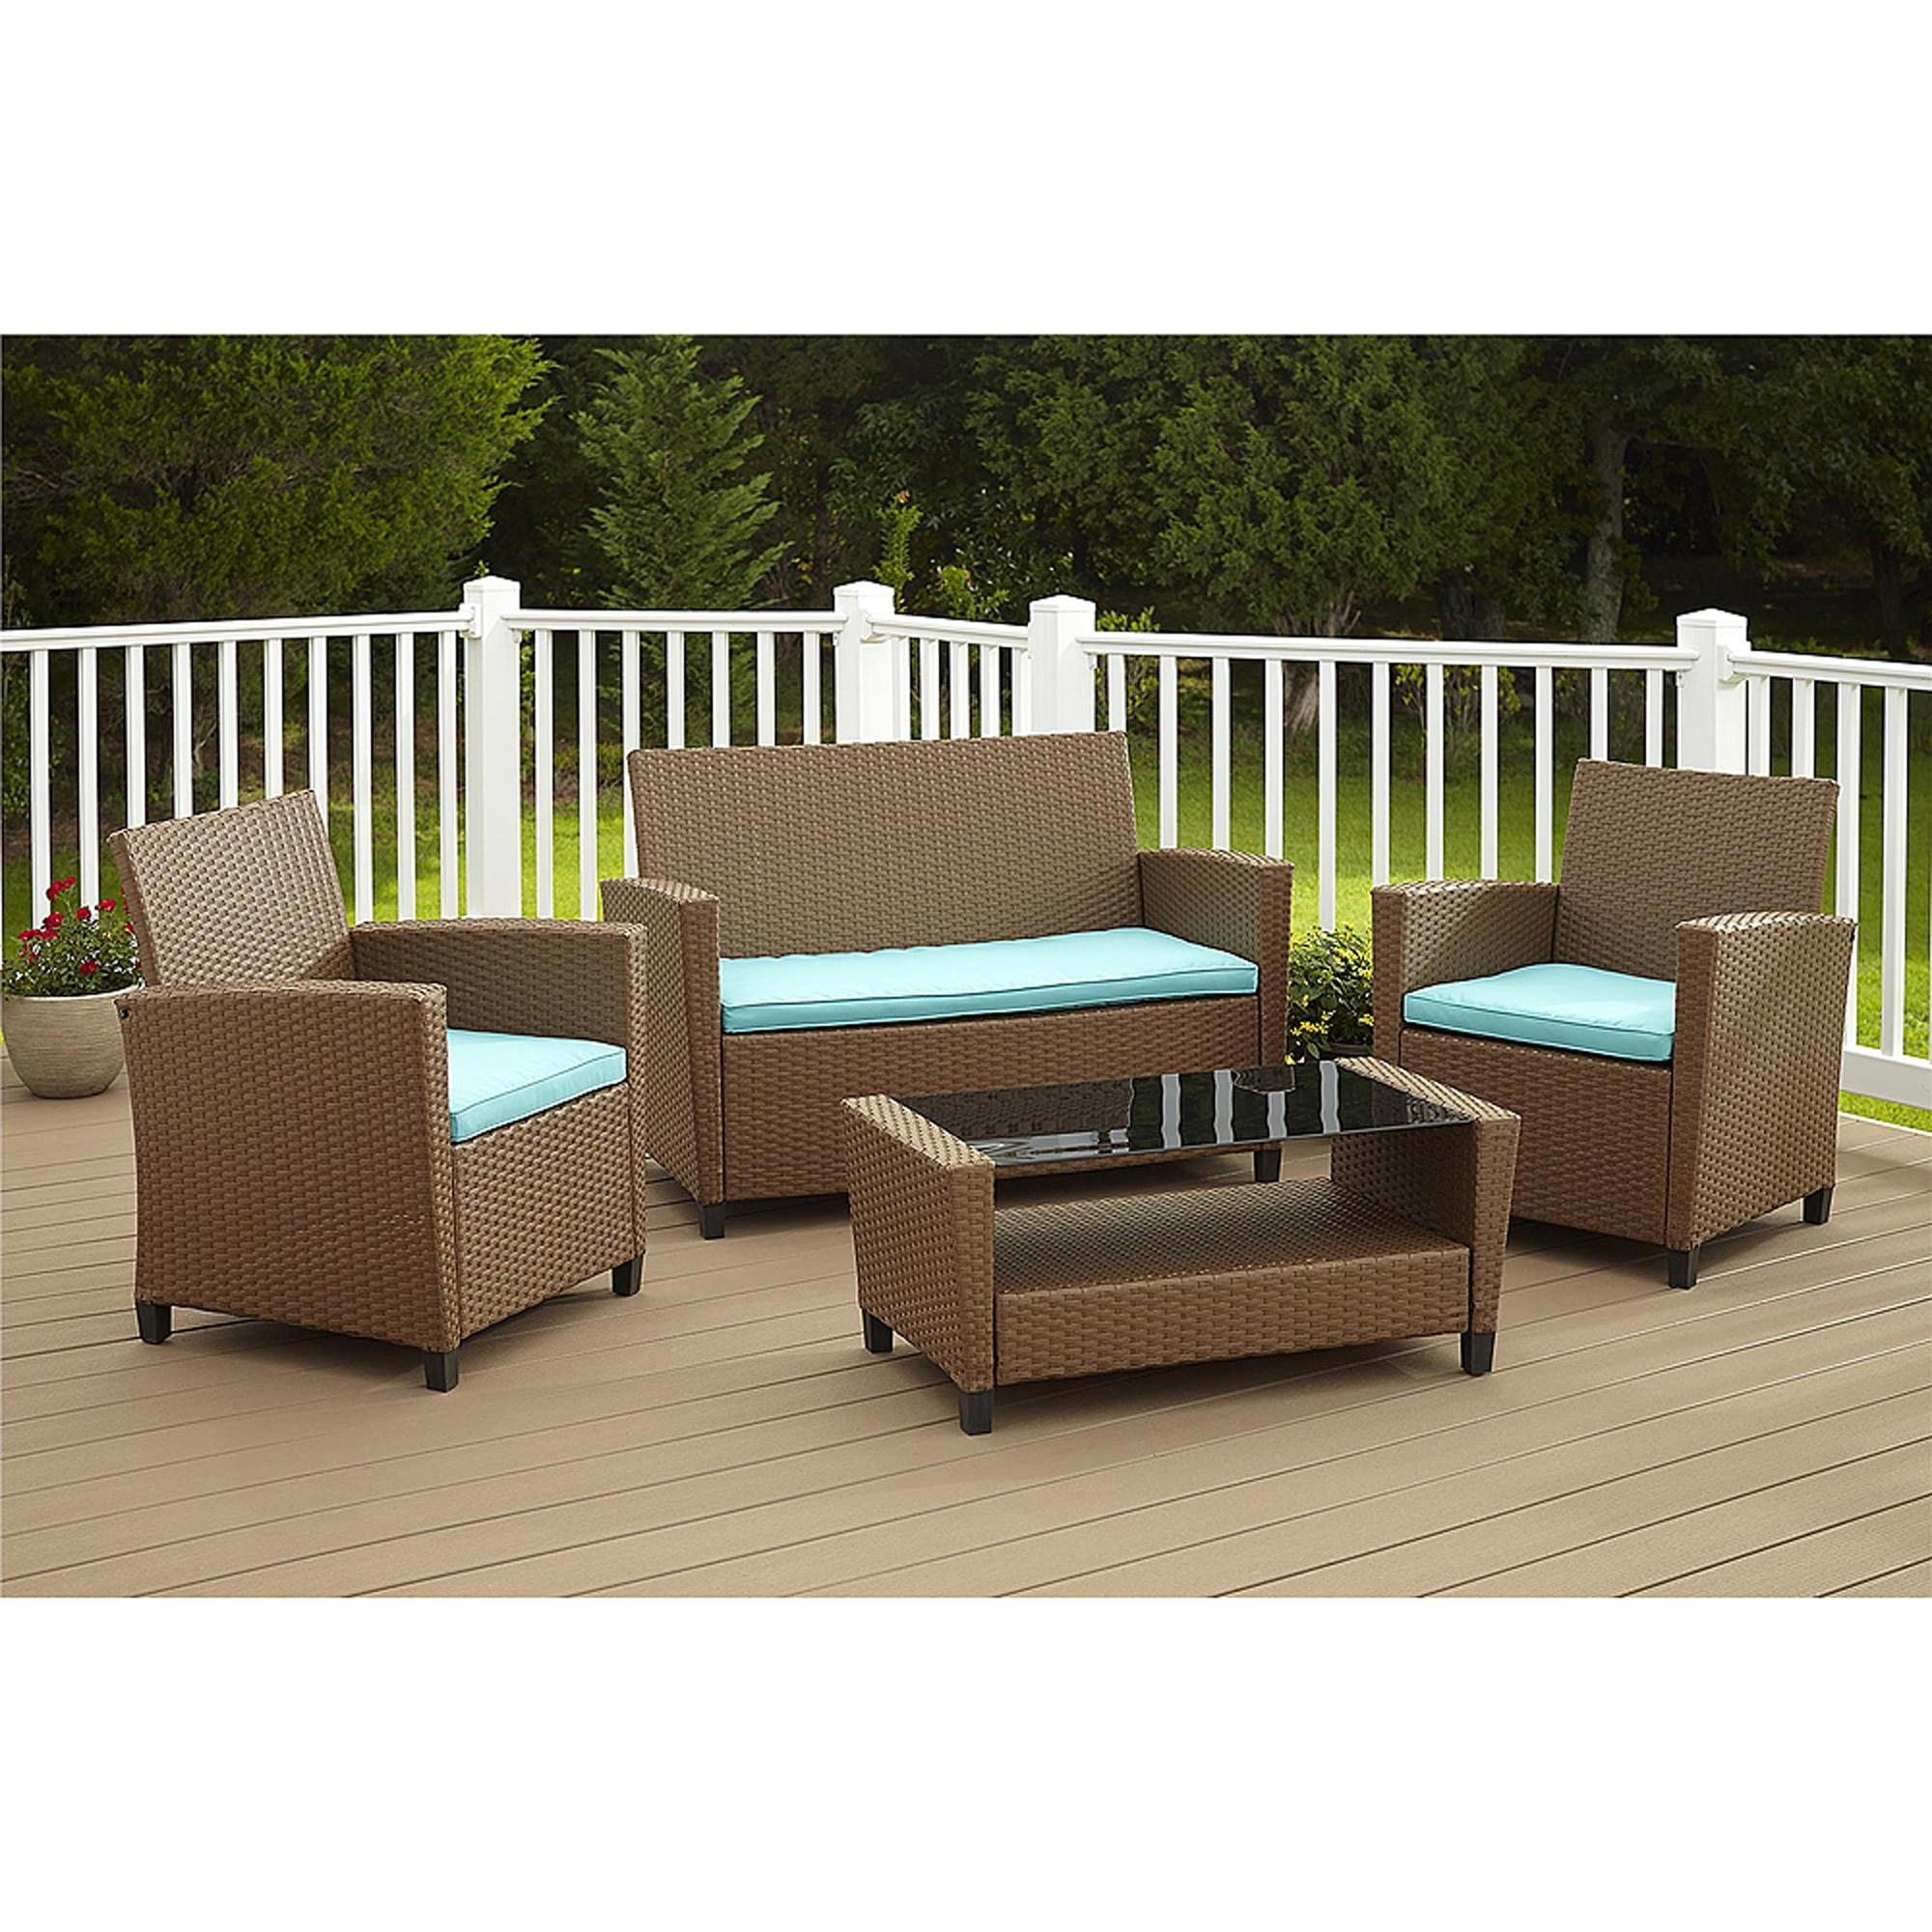 Cosco Outdoor Malmo 4 Piece Resin Wicker Patio Conversation Set Regarding Black Wicker Sofas (View 13 of 20)